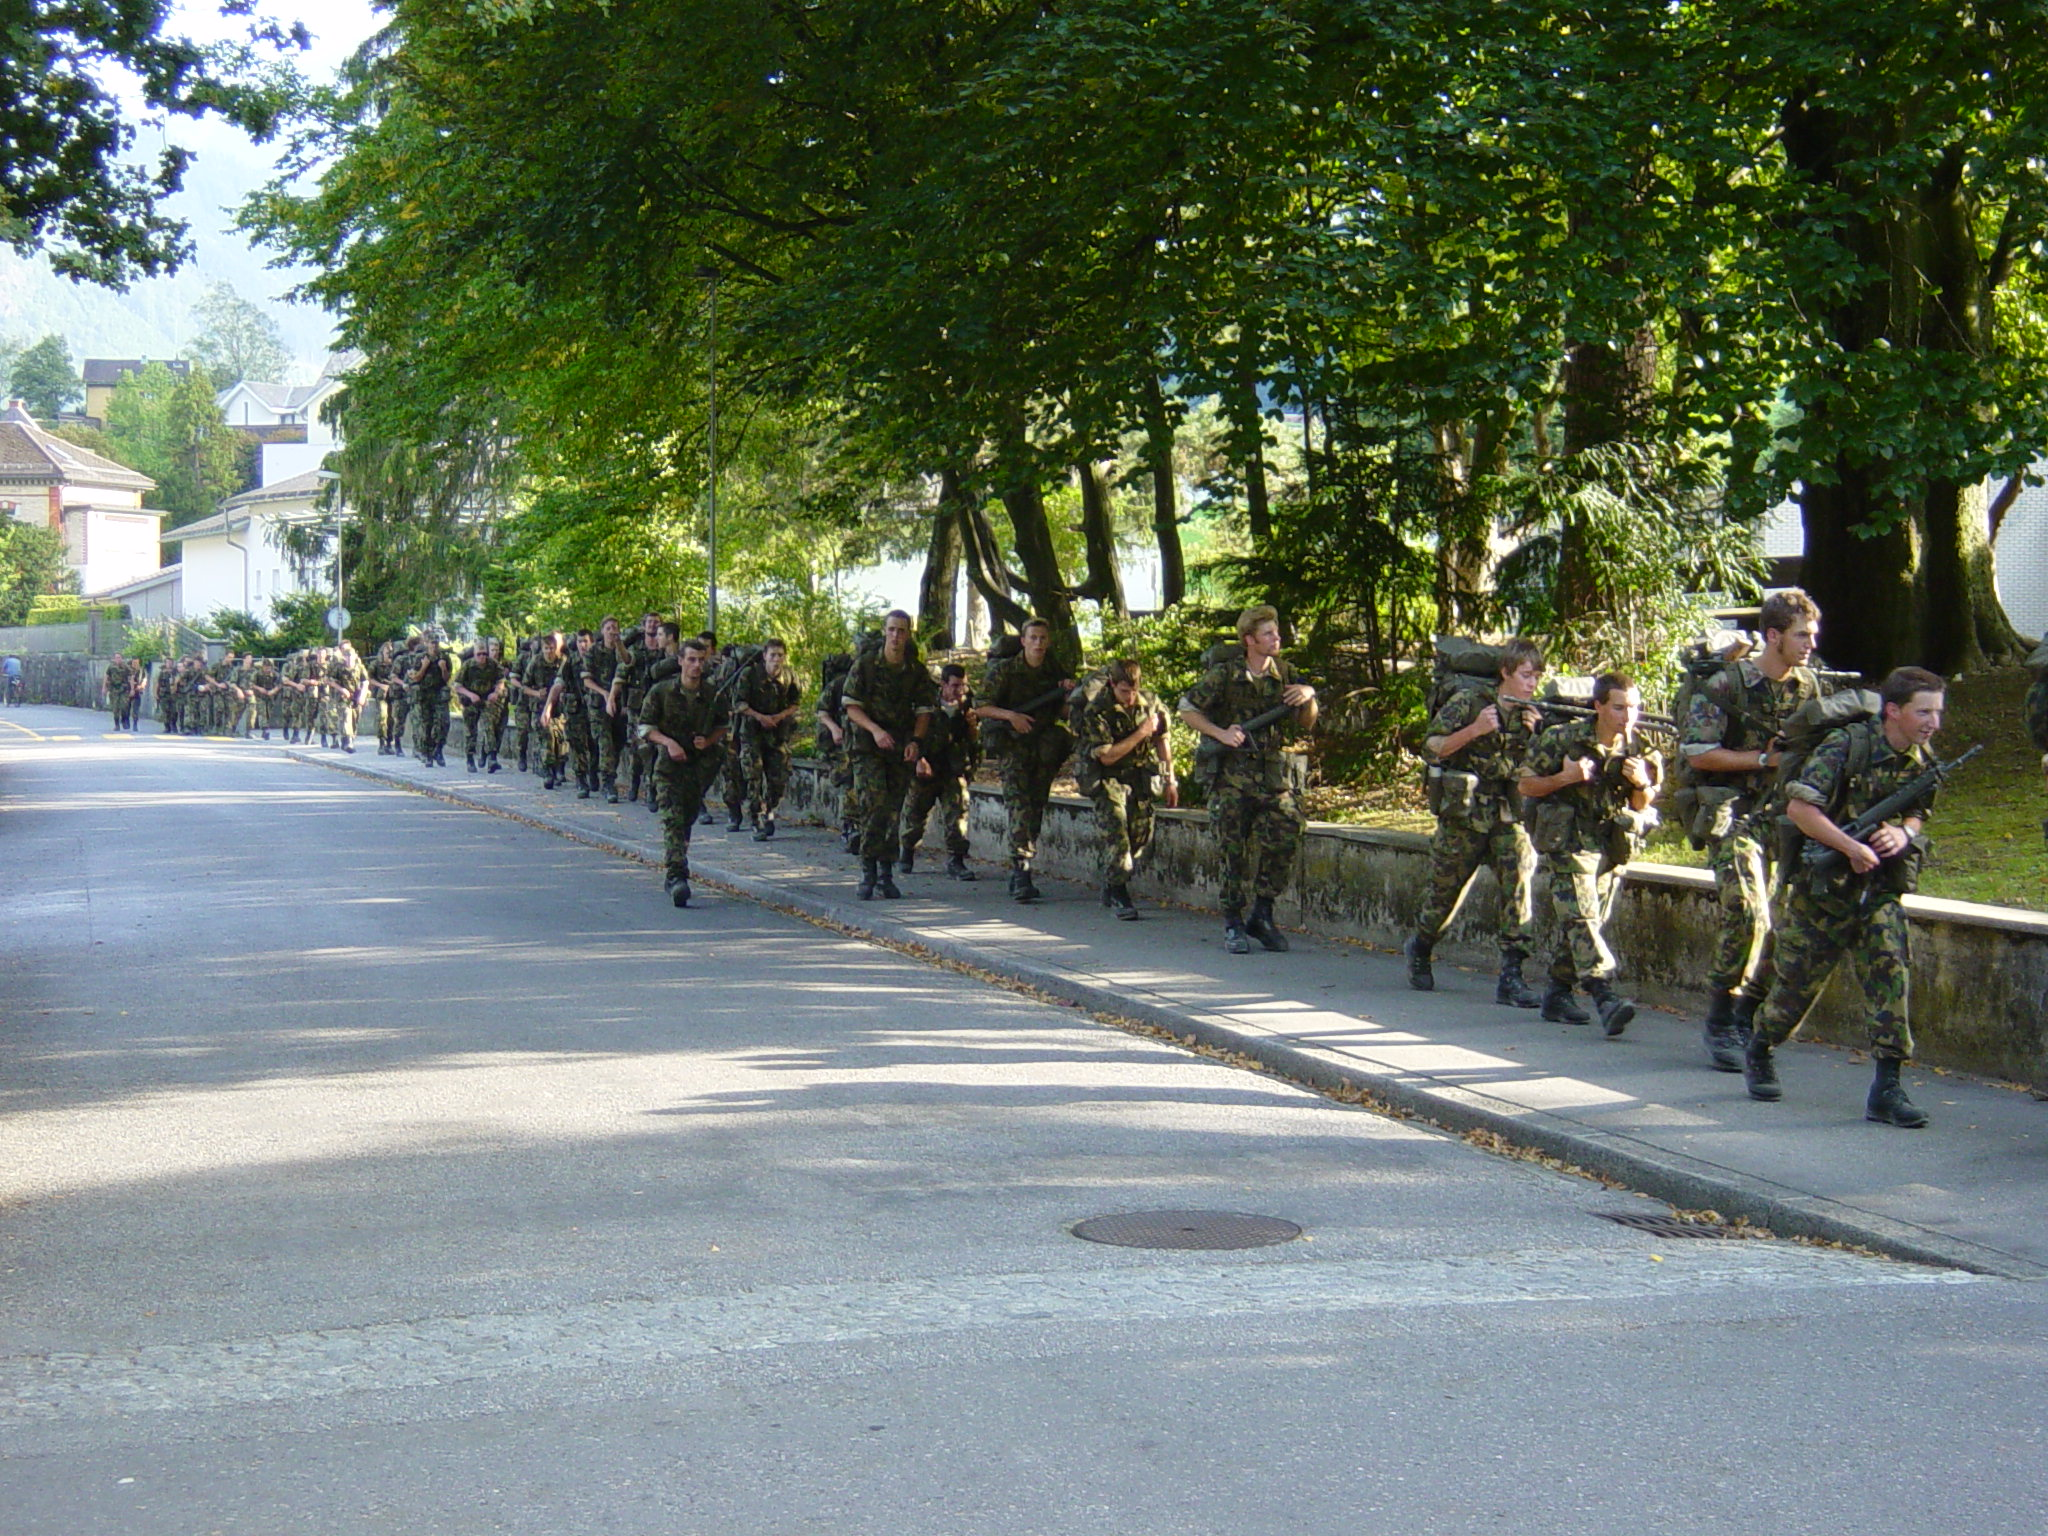 Image of swiss army troops